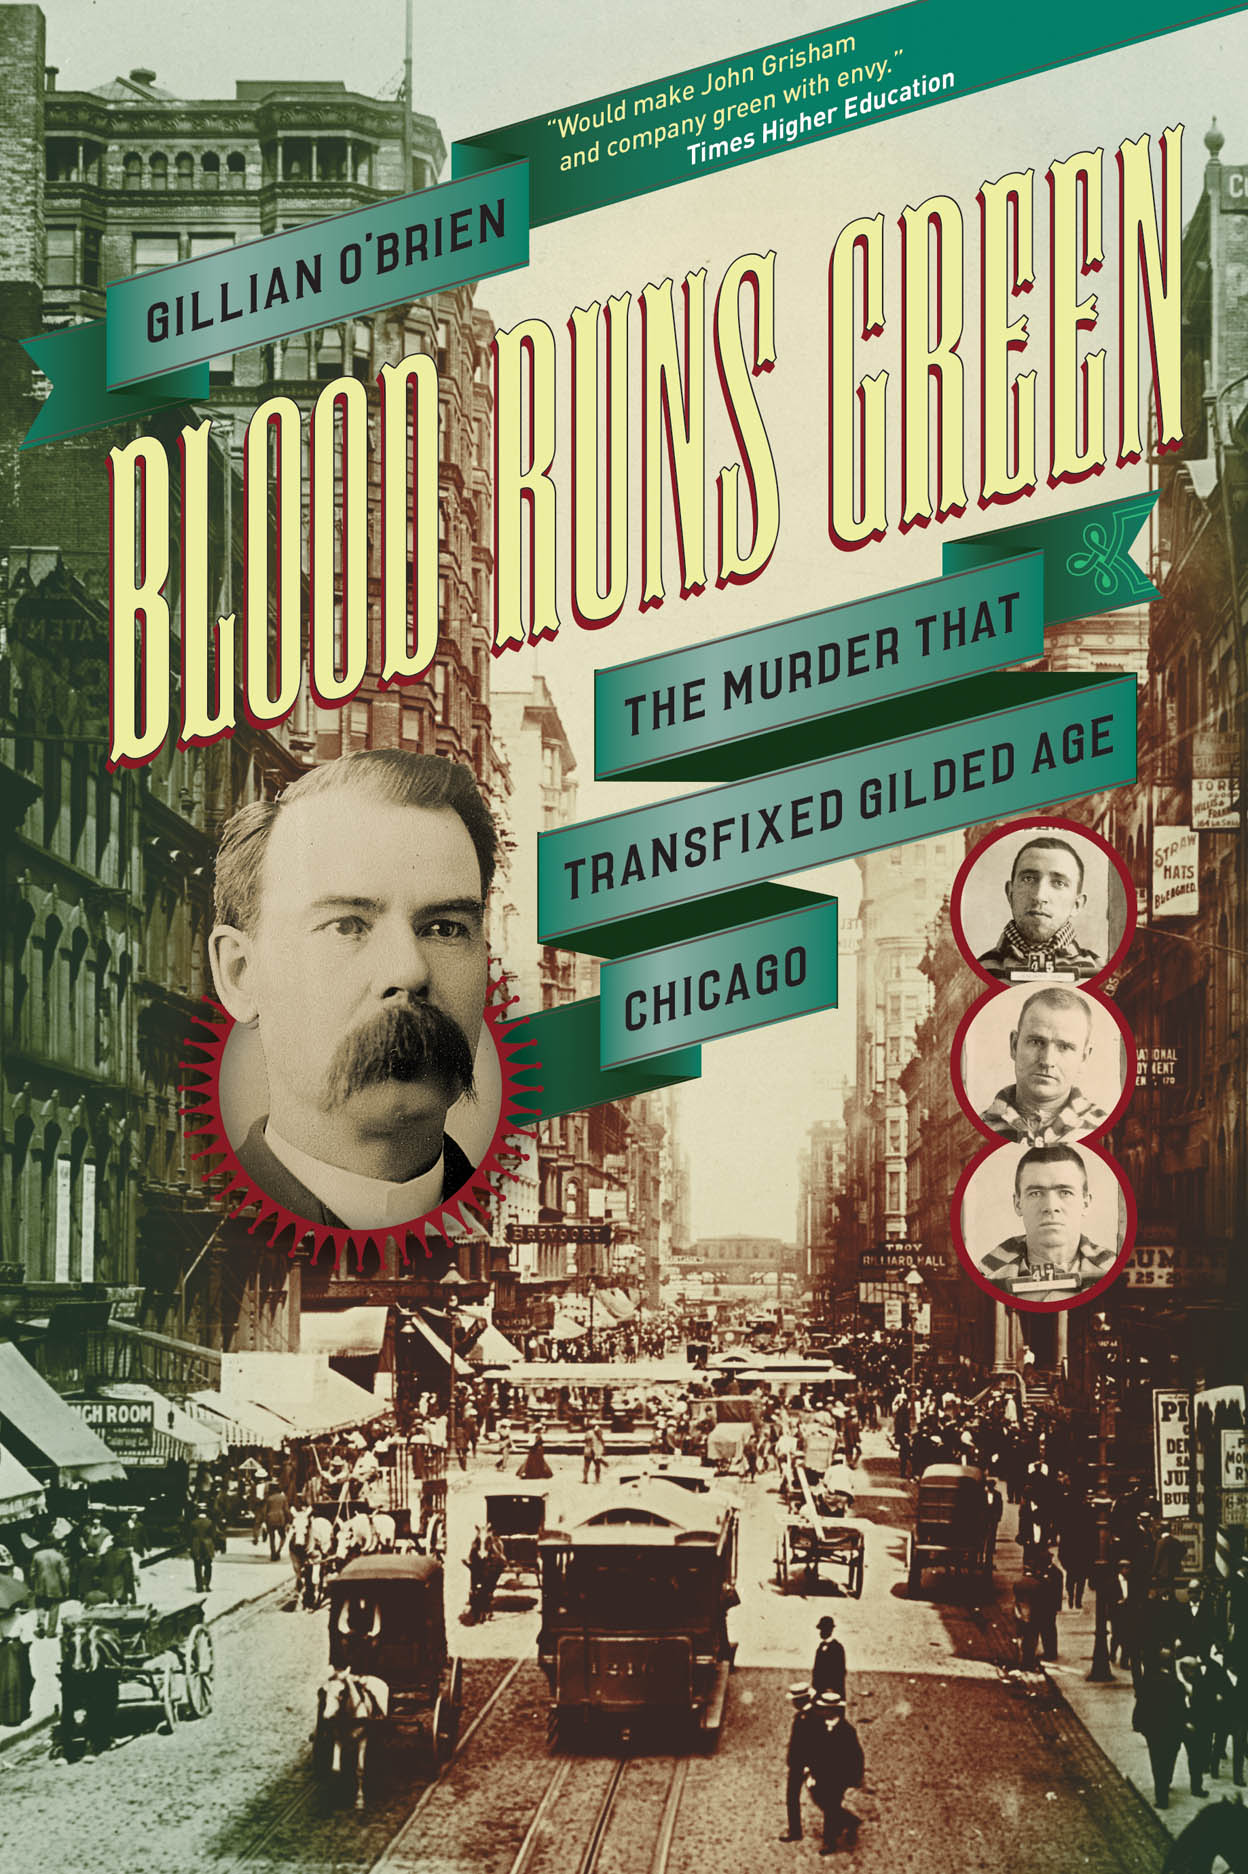 Blood Runs Green: The Murder That Transfixed Gilded Age Chicago